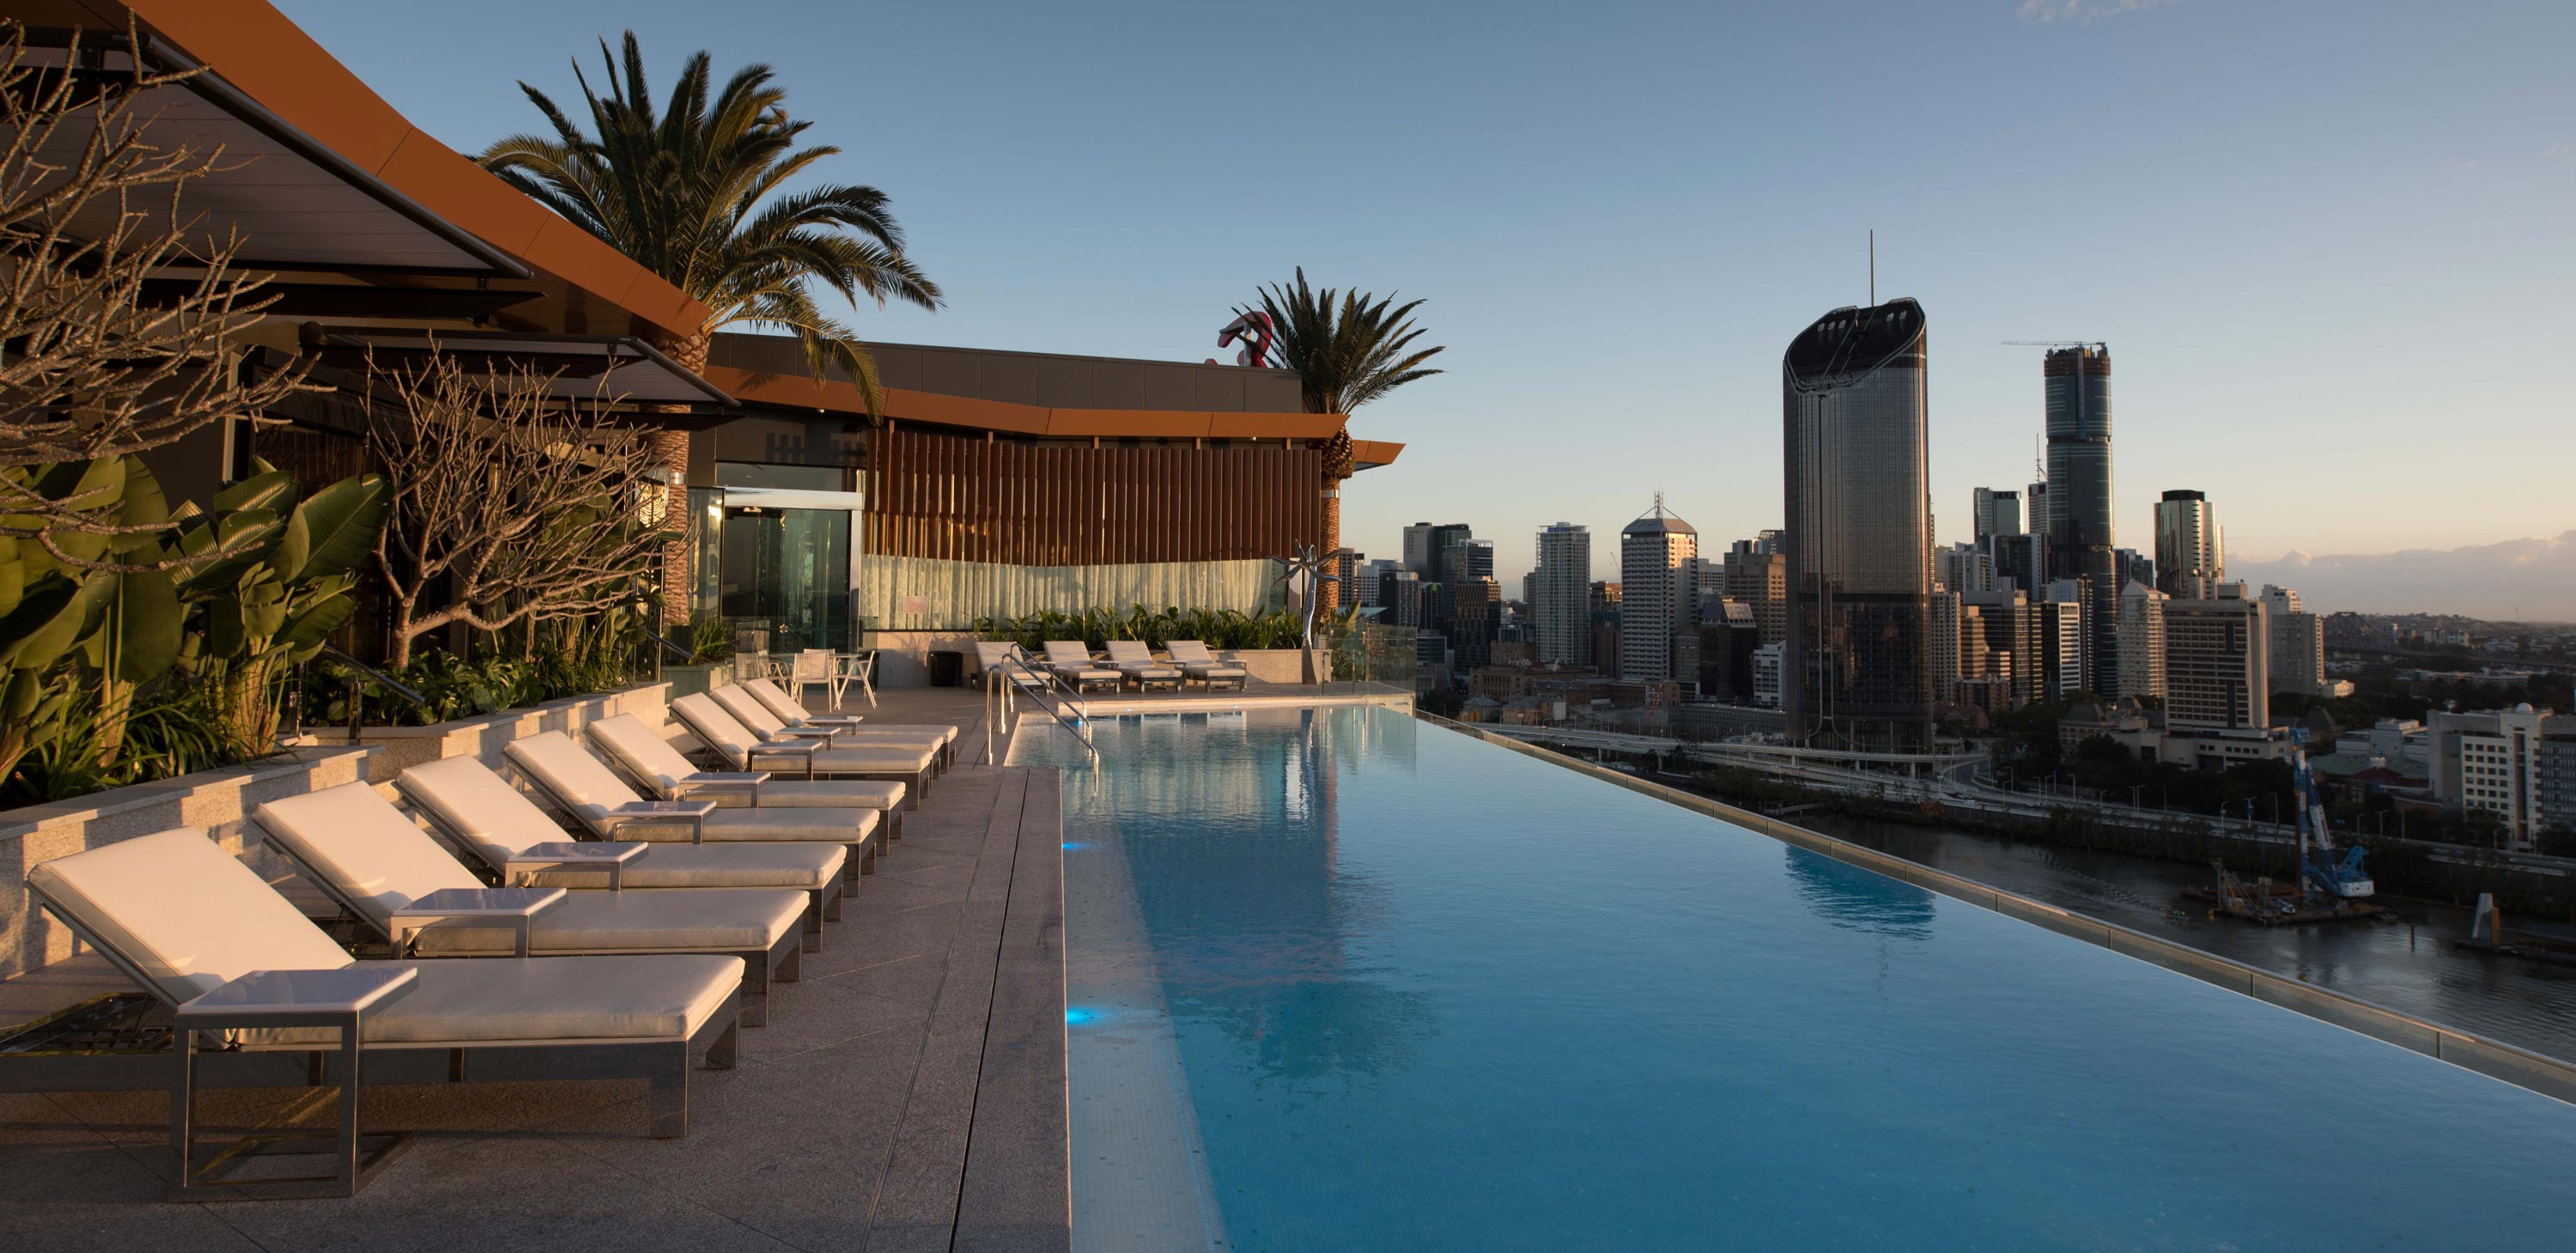 Emporium Hotel South Bank rooftop pool